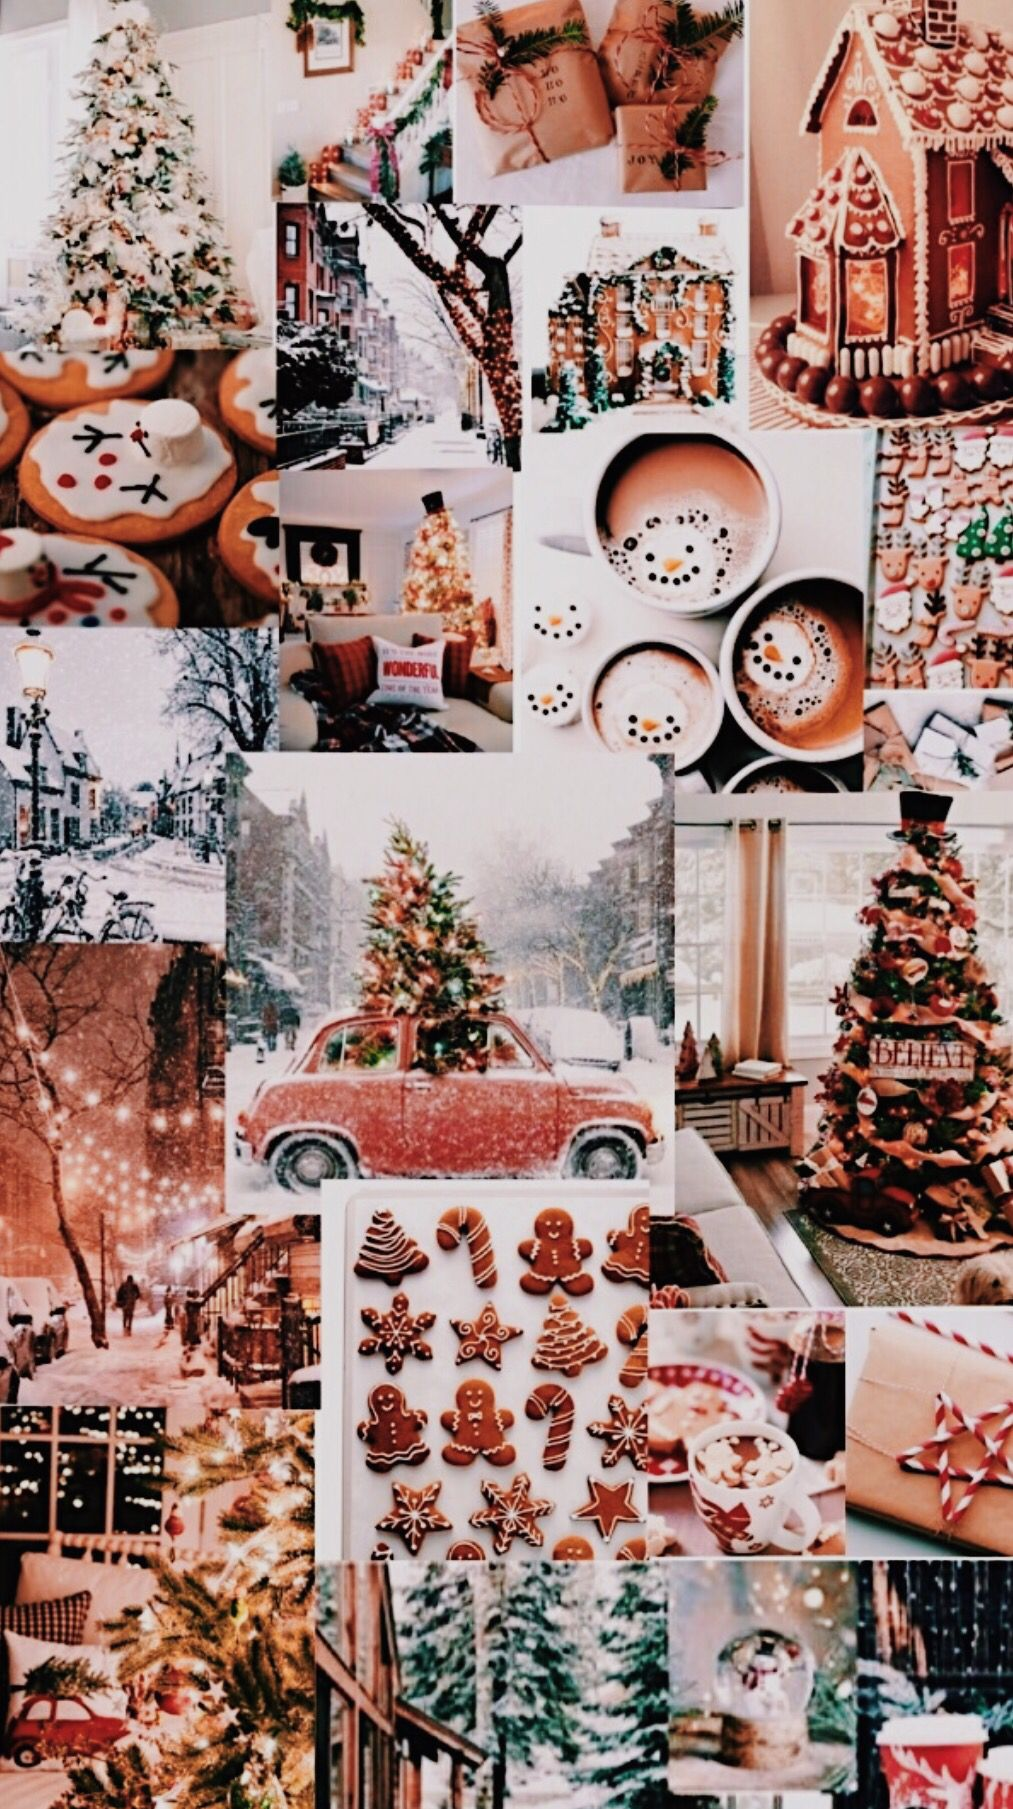 Free Download Best Time Of The Year Christmas Collage Christmas Aesthetic 1013x1809 For Your Desktop Mobile Tablet Explore 37 Vsco Christmas Wallpapers Vsco Christmas Wallpapers Vsco Hypebeast Wallpaper Christmas Background